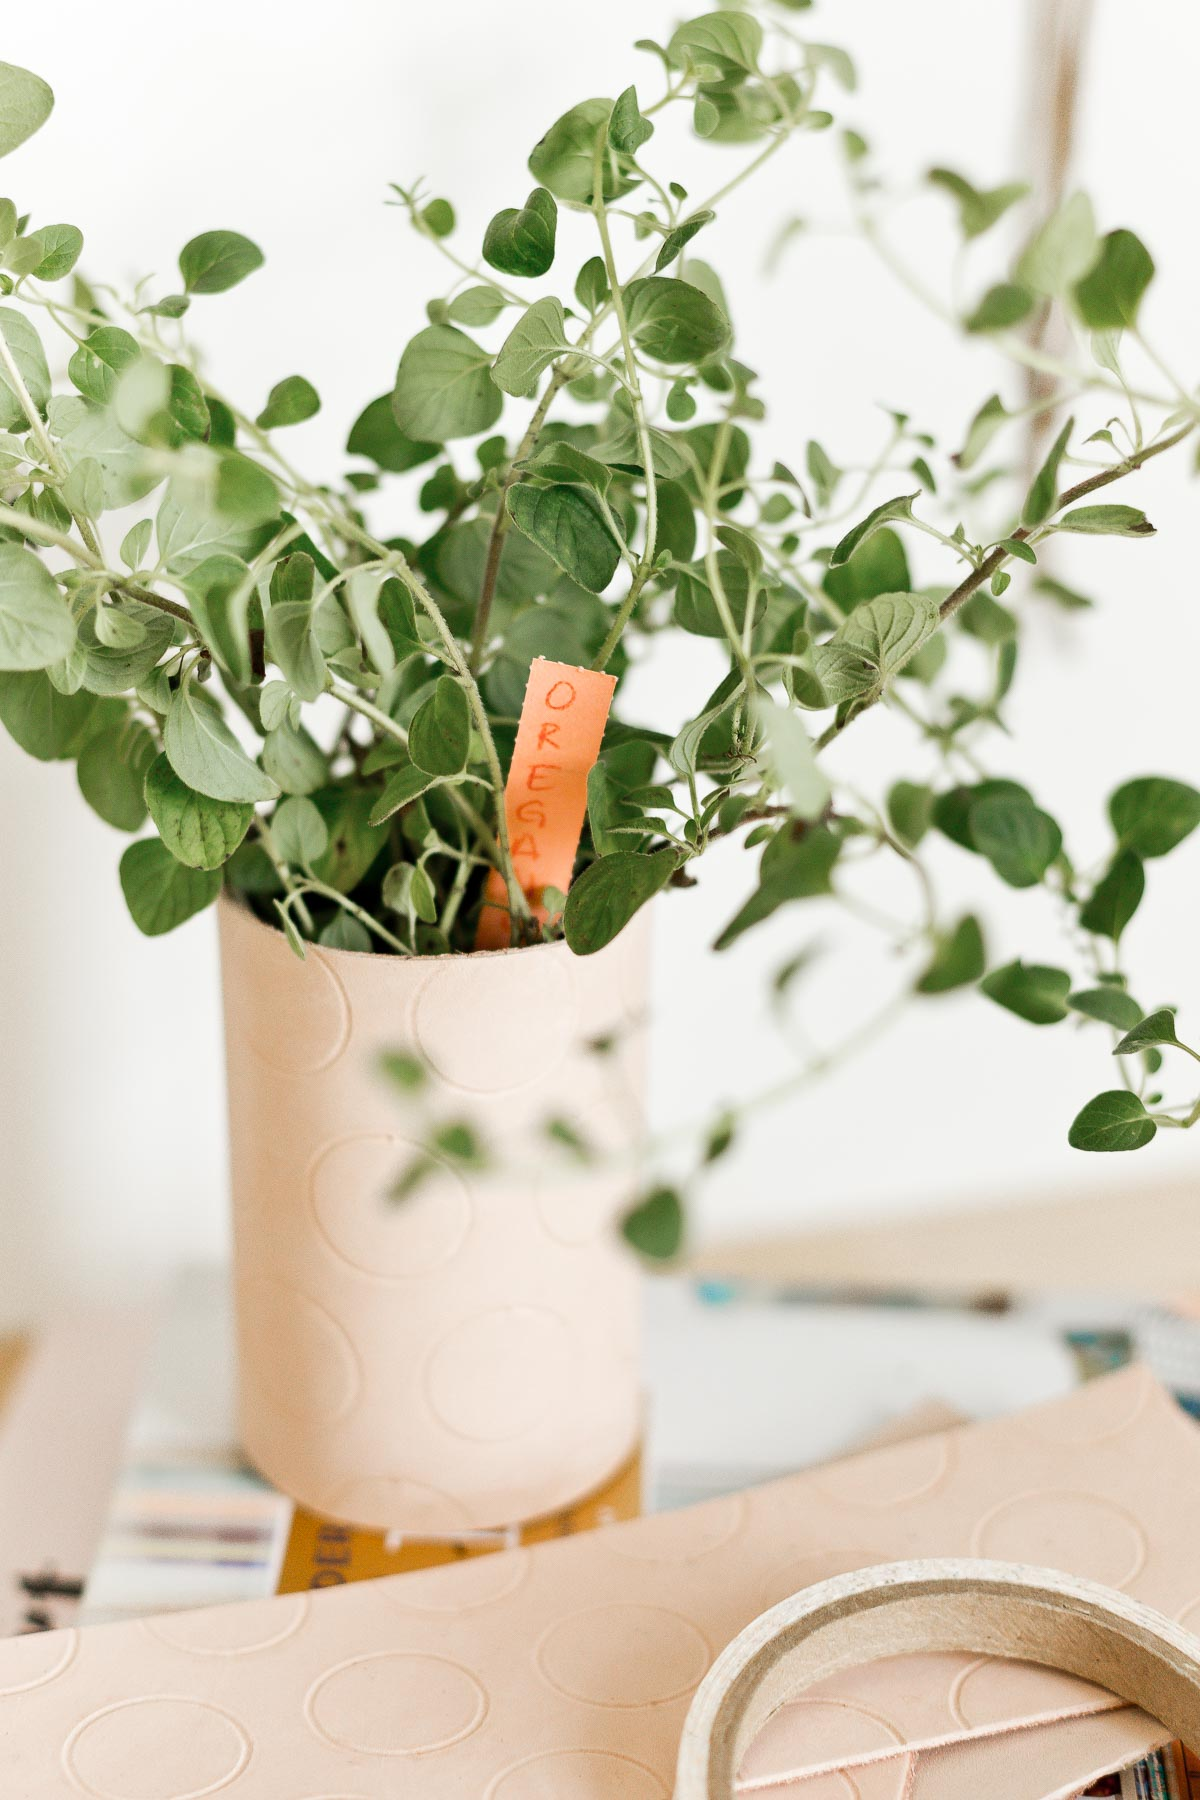 Create a chic indoor herb garden with DIY embossed leather planters (and herb markers). #leather #diy #leatherdiy #indoorherbgarden #polkadot #herbs